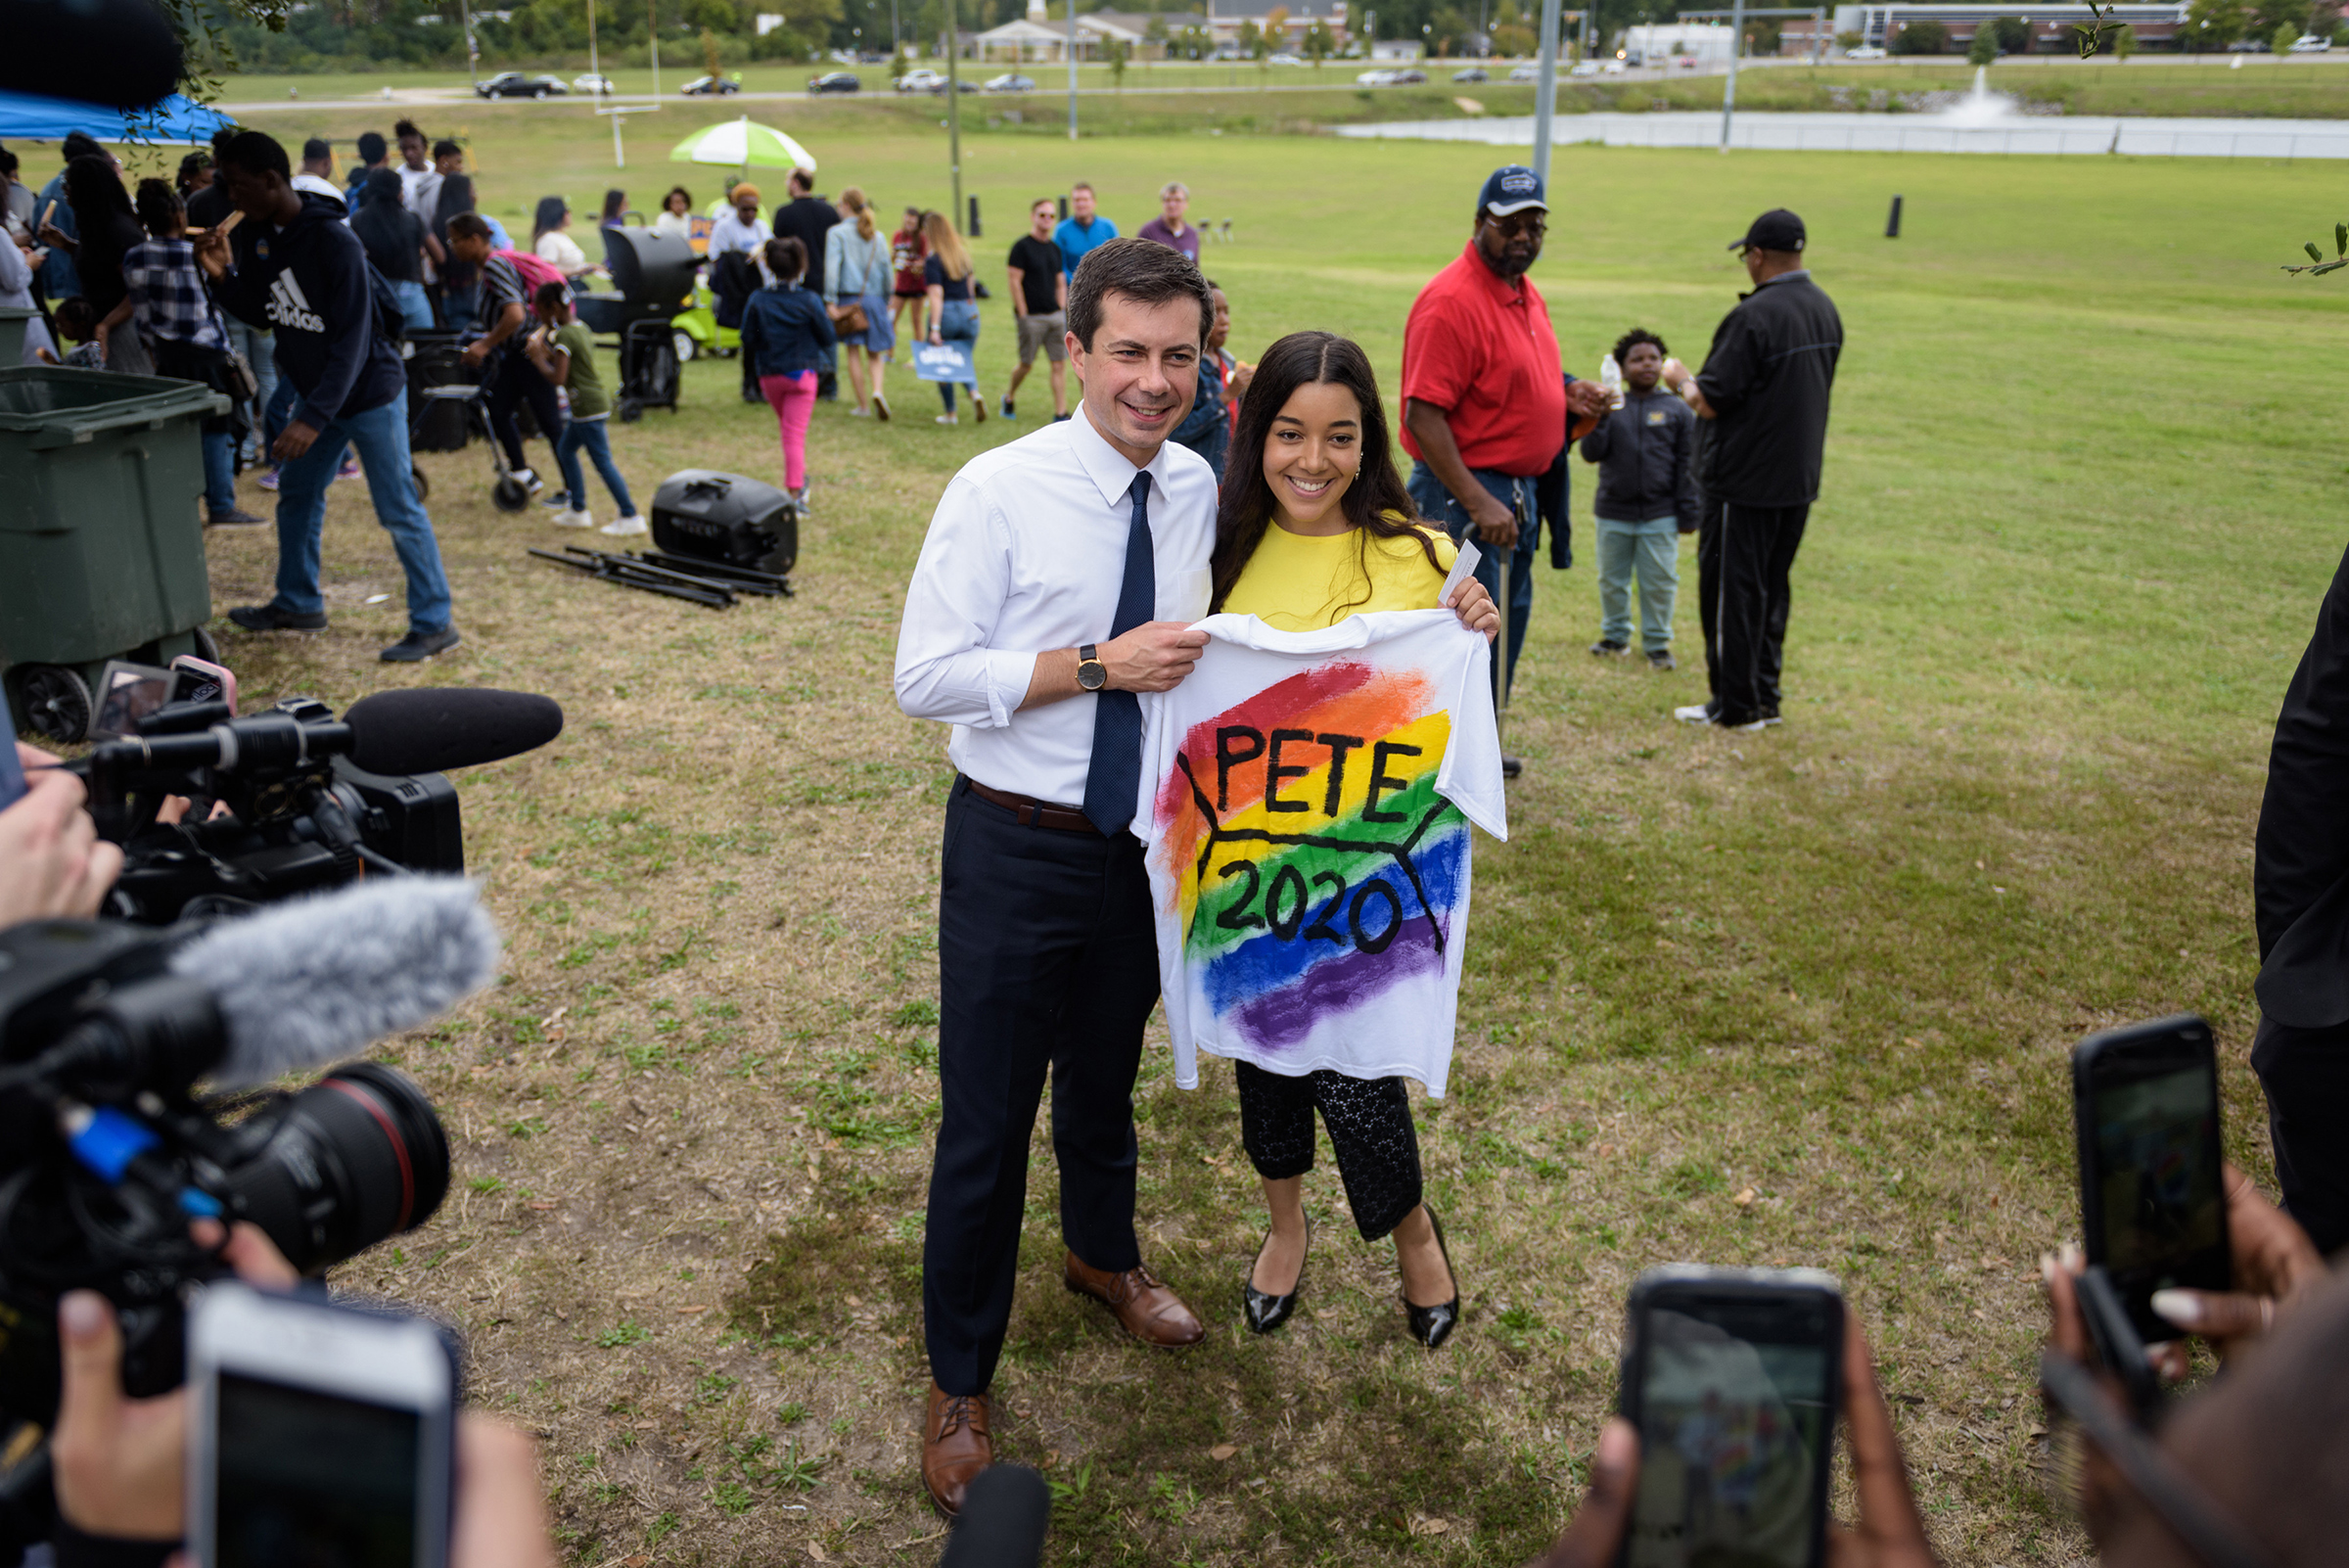 Mayor Pete Buttigieg of South Bend, Ind. poses for a photo with Kashmir Imani, holding a T-shirt she designed, during a homecoming tailgate event at Allen University, a historically black campus in Columbia, S.C., on Oct. 26, 2019.